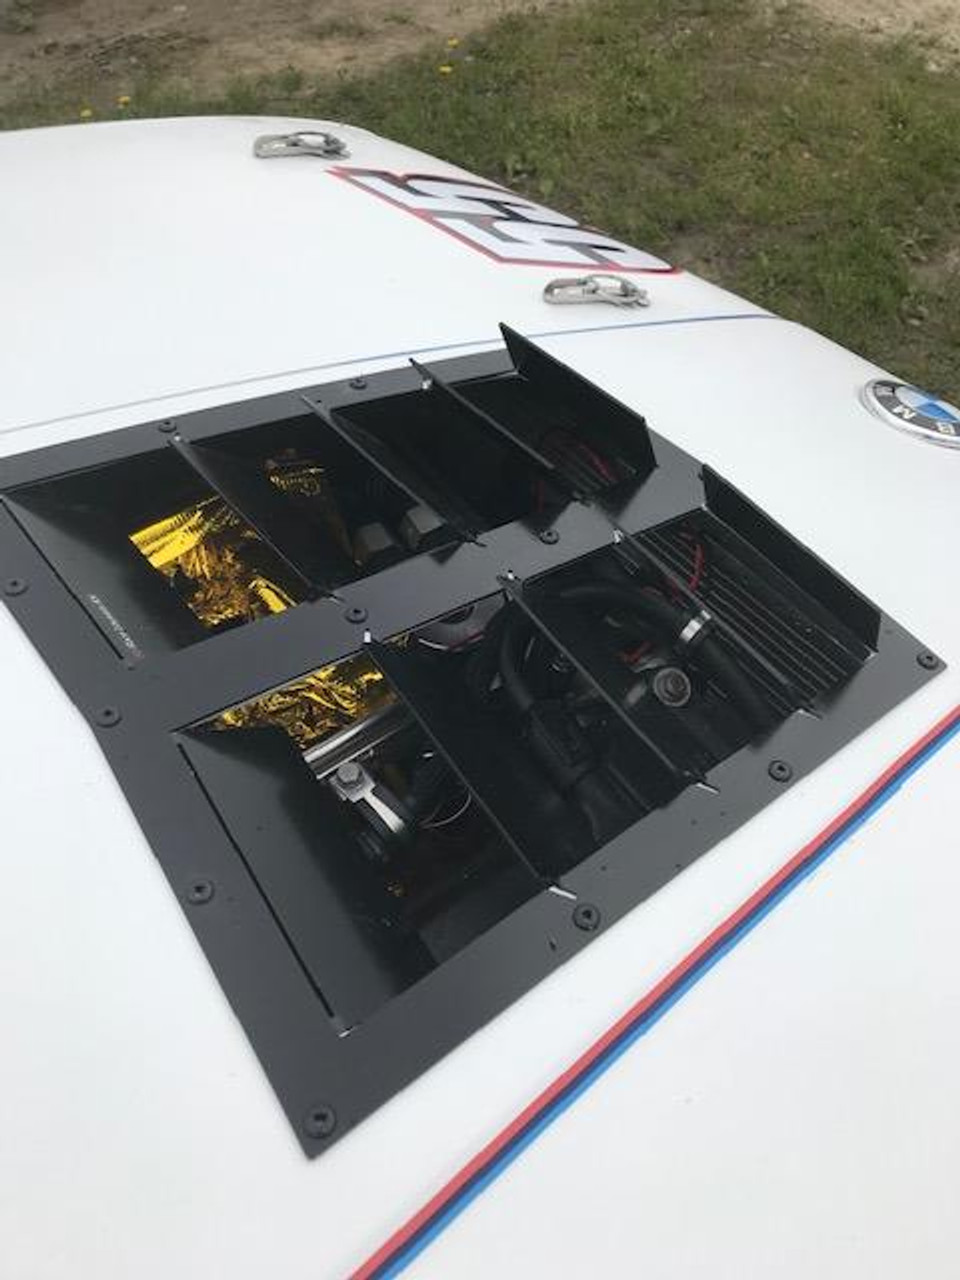 Race Louver BMW E30 RT Track Trim center car hood extractor is designed for street, high performance driving and track duty.